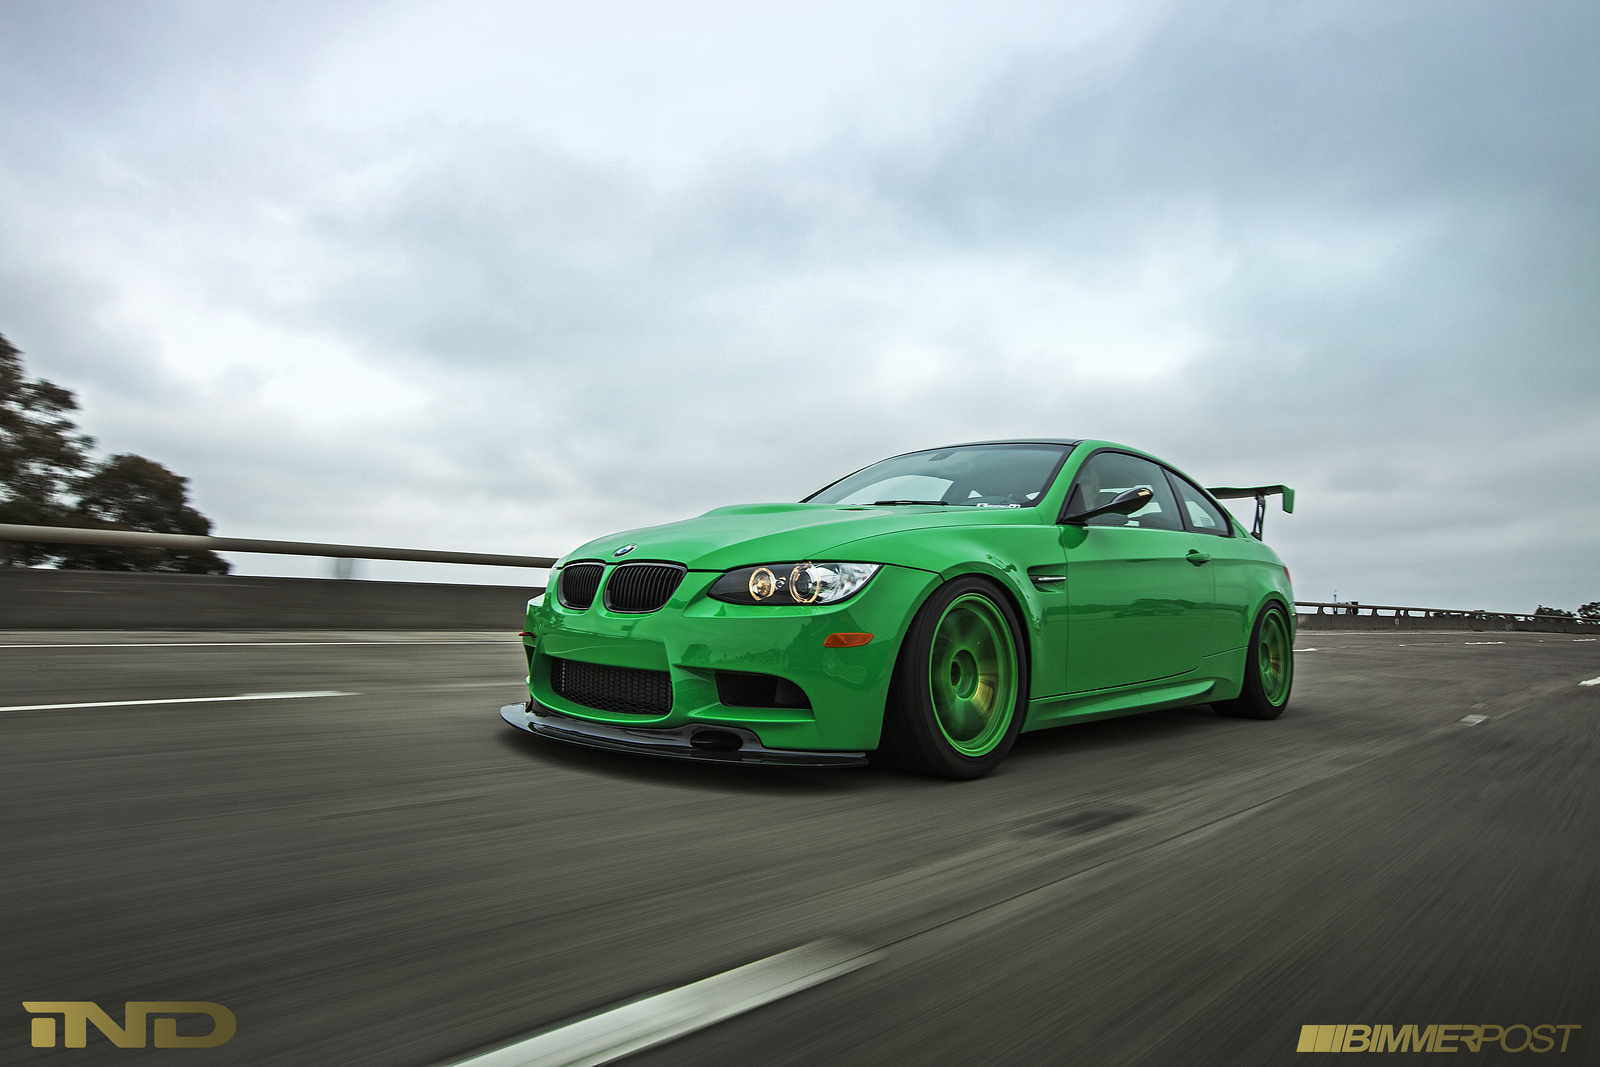 IND's Signal Green BMW E92 M3 Tells a Story - autoevolution